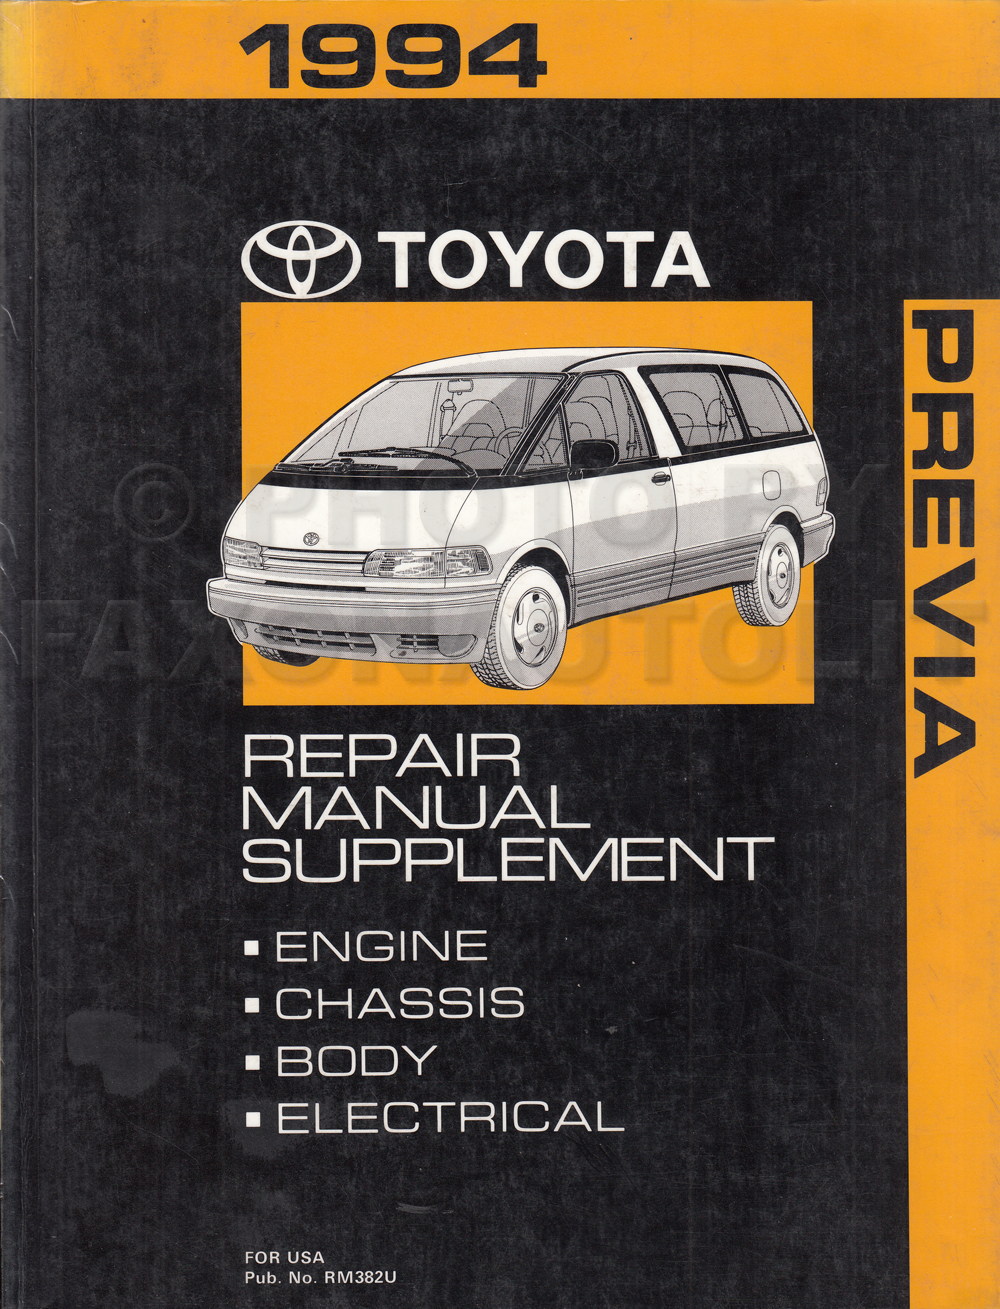 1994 toyota previa van repair shop manual original supplement1994 toyota previa van repair manual original